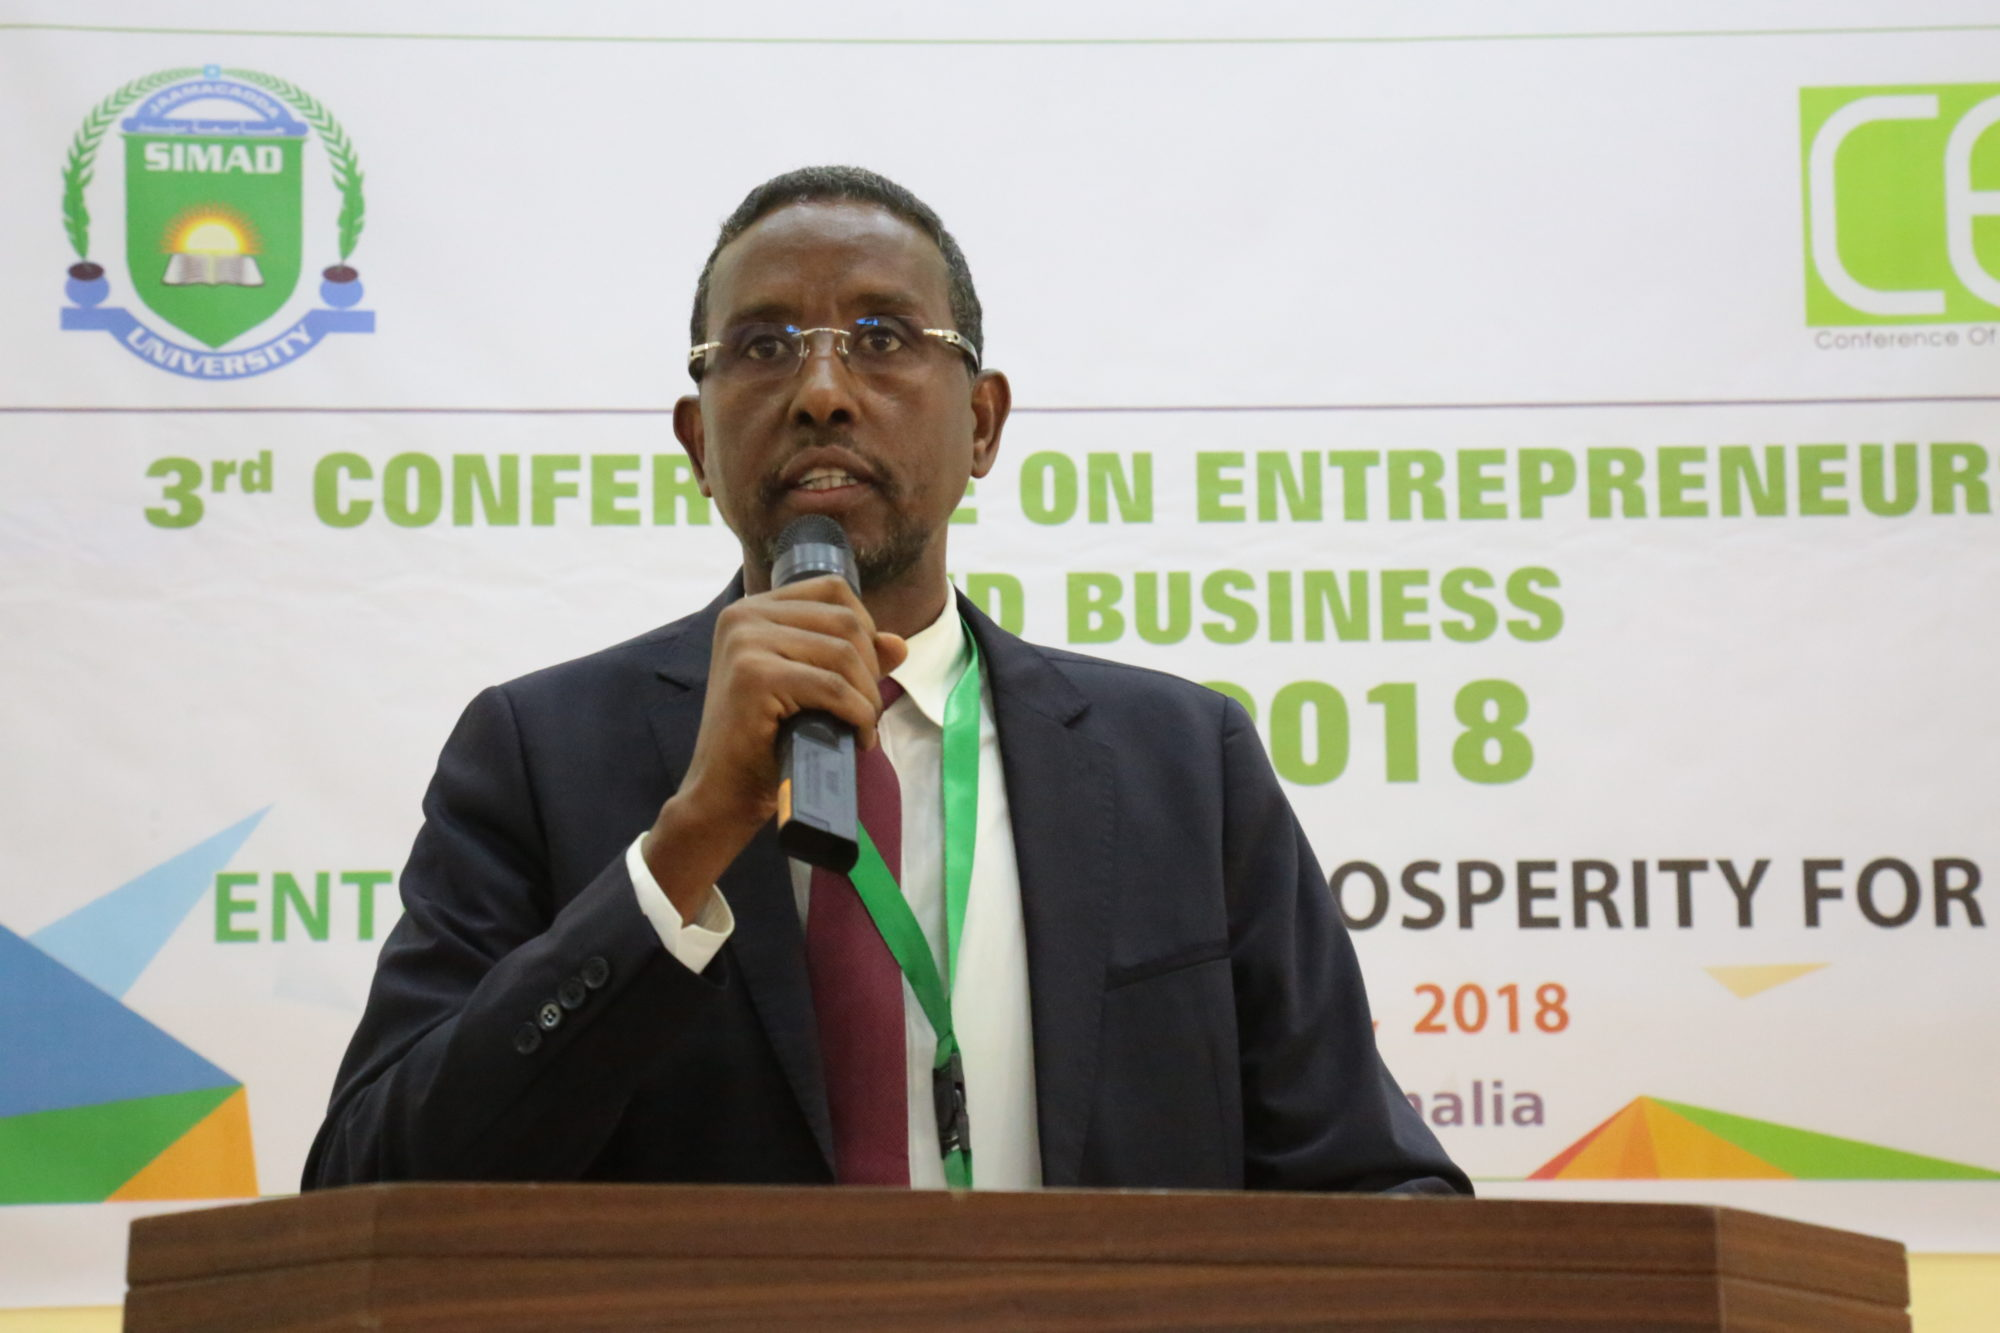 SIMAD University hosts the 3rd Conference on Entrepreneurship and Business Development.